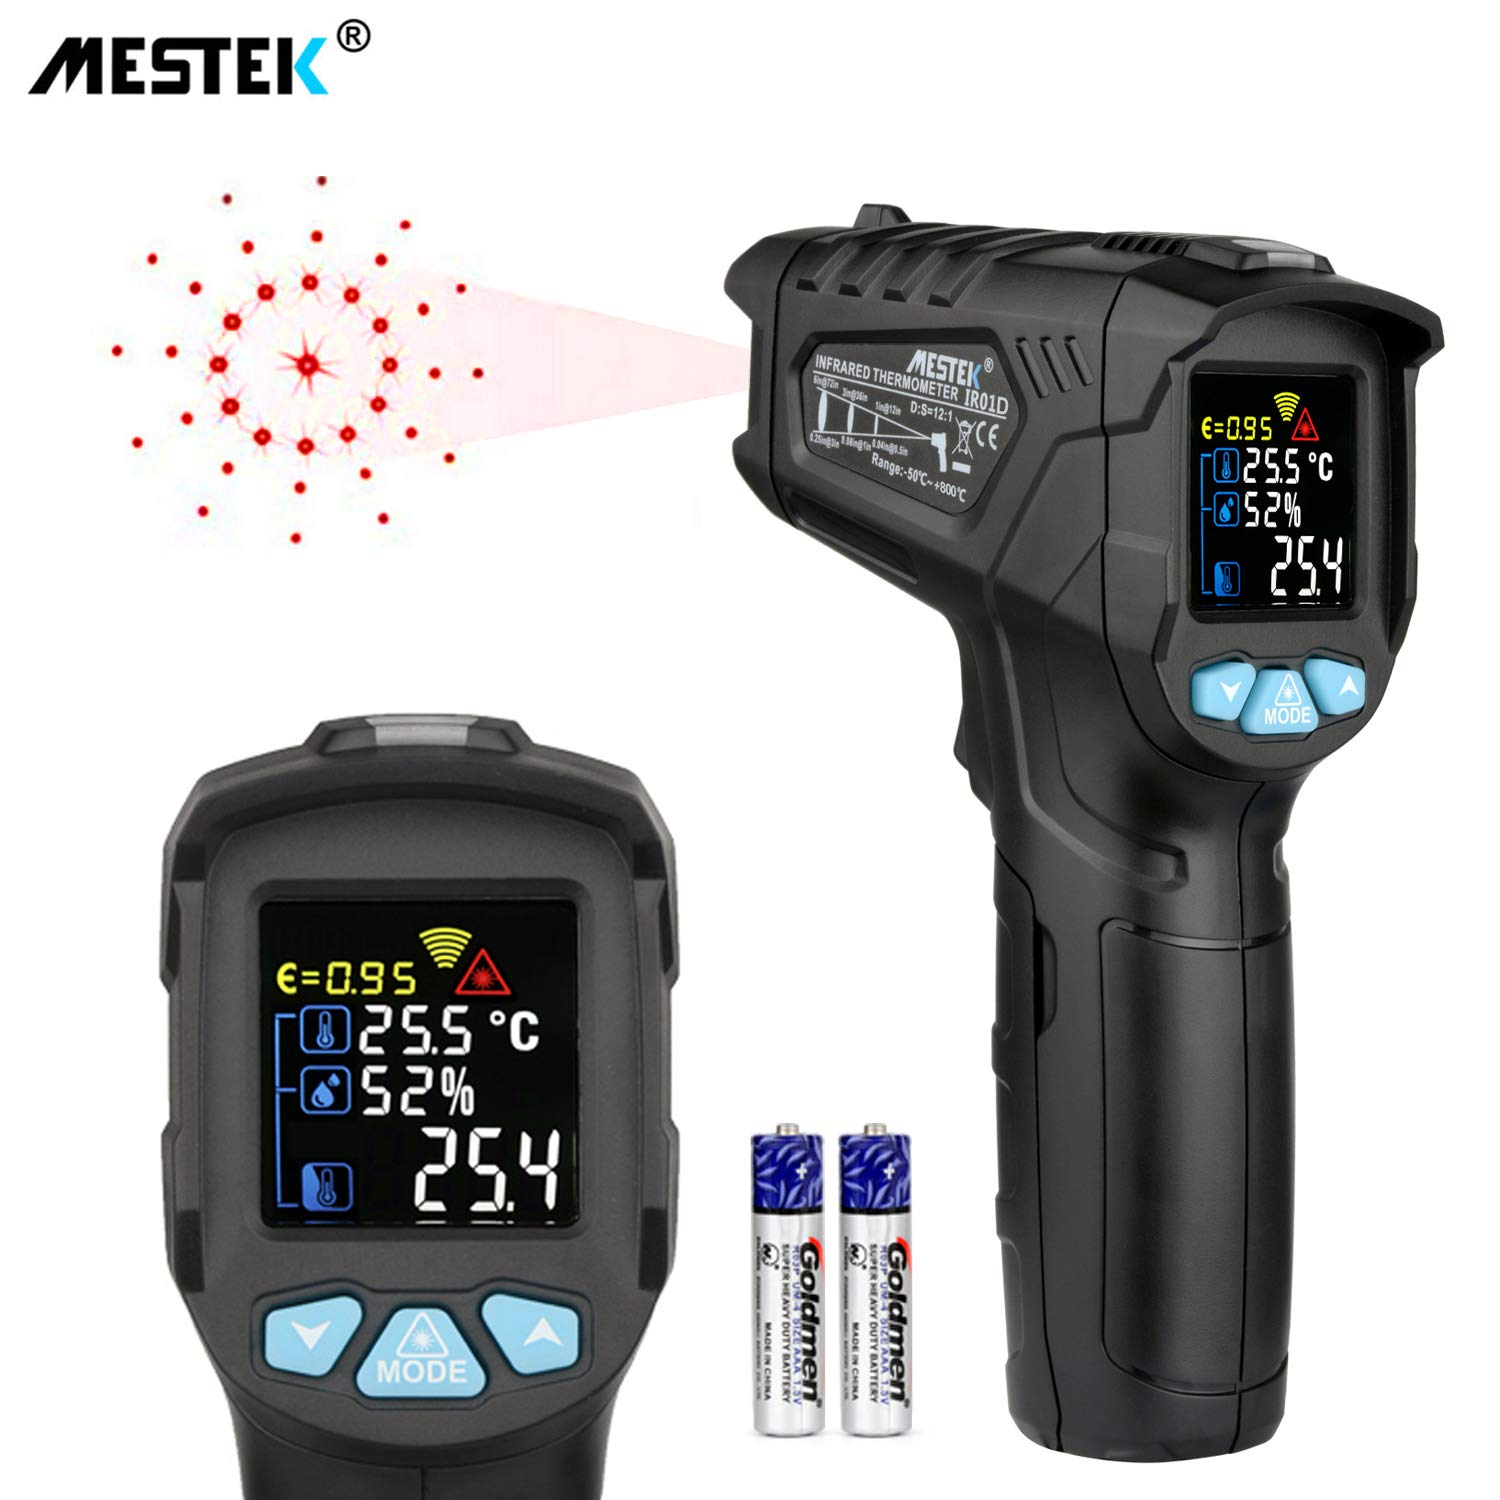 Infrared Thermometer Temperature Gun MESTEK Non-Contact Laser Digital Thermometers with Color LCD Screen -58℉~1472℉(-50℃~800℃) Adjustable Emissivity Humidity Alarm Setting Max/Hold Indoor Outdoor Home